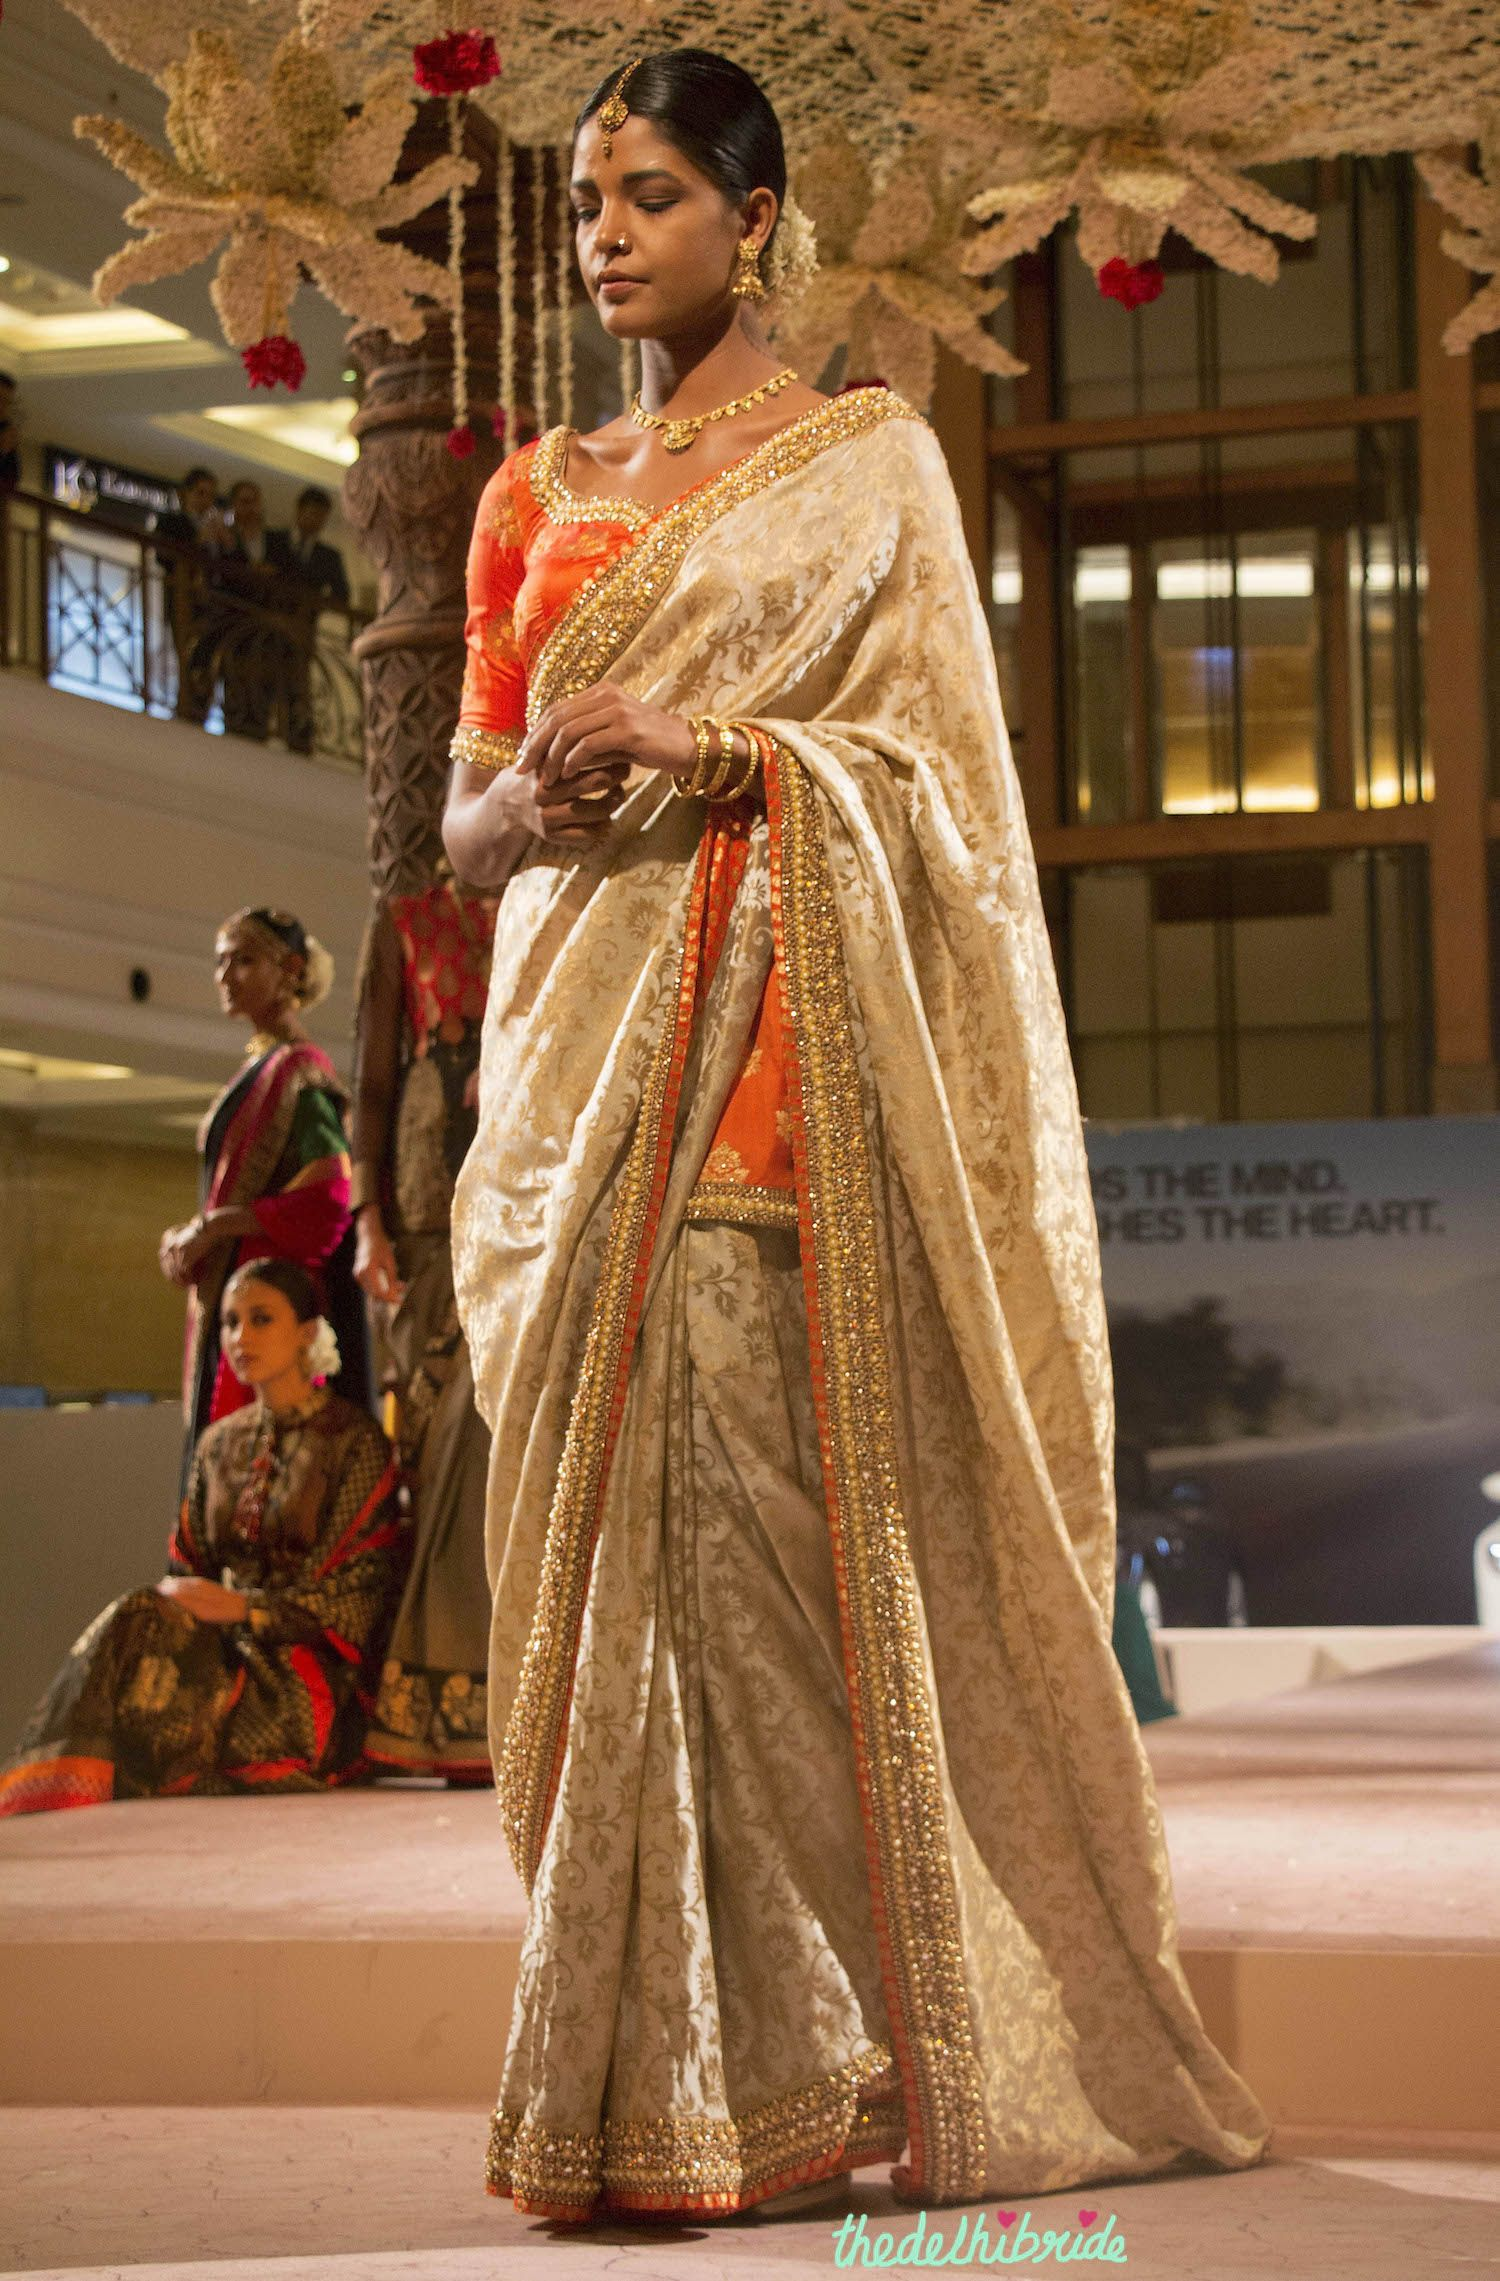 Ashima Leena - Ivory & Gold Saree With Orange Blouse at BMW India Bridal Fashion Week 2015